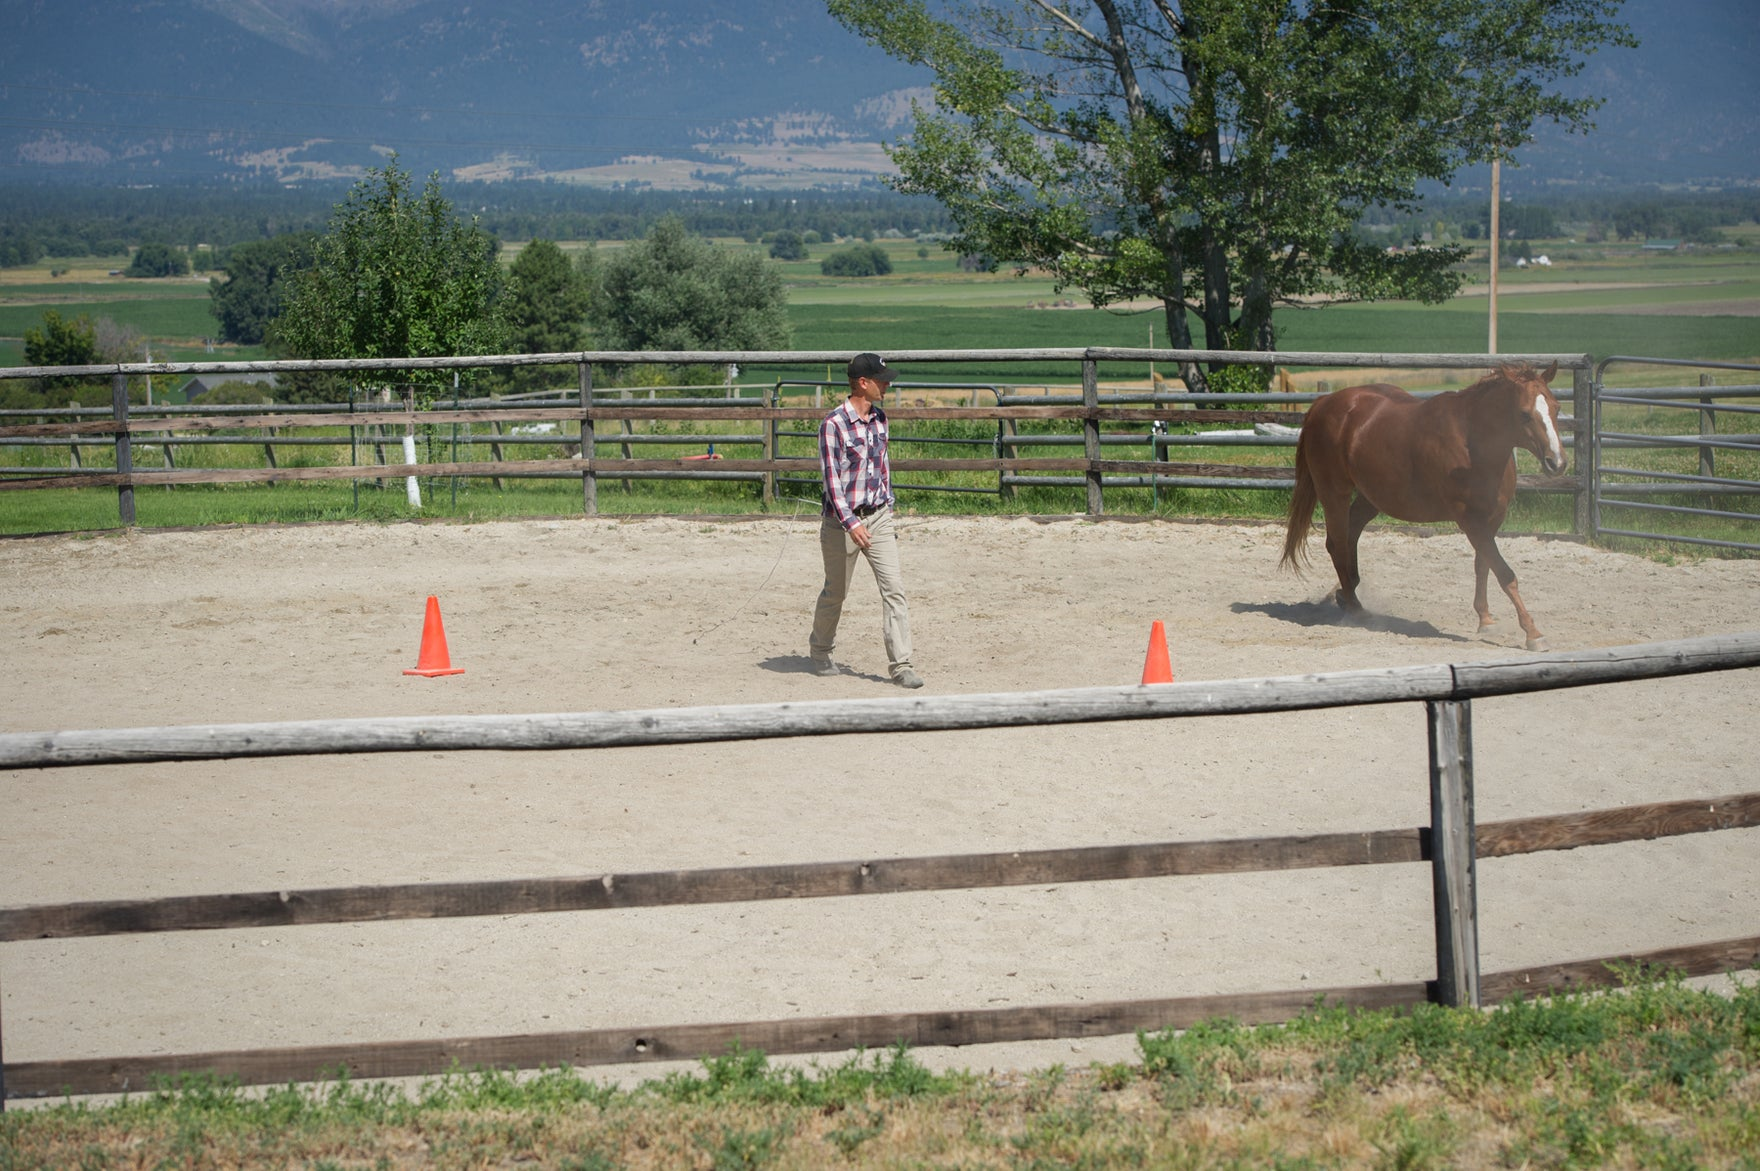 Round pens can ruin horses and here's why - by Don Jessop